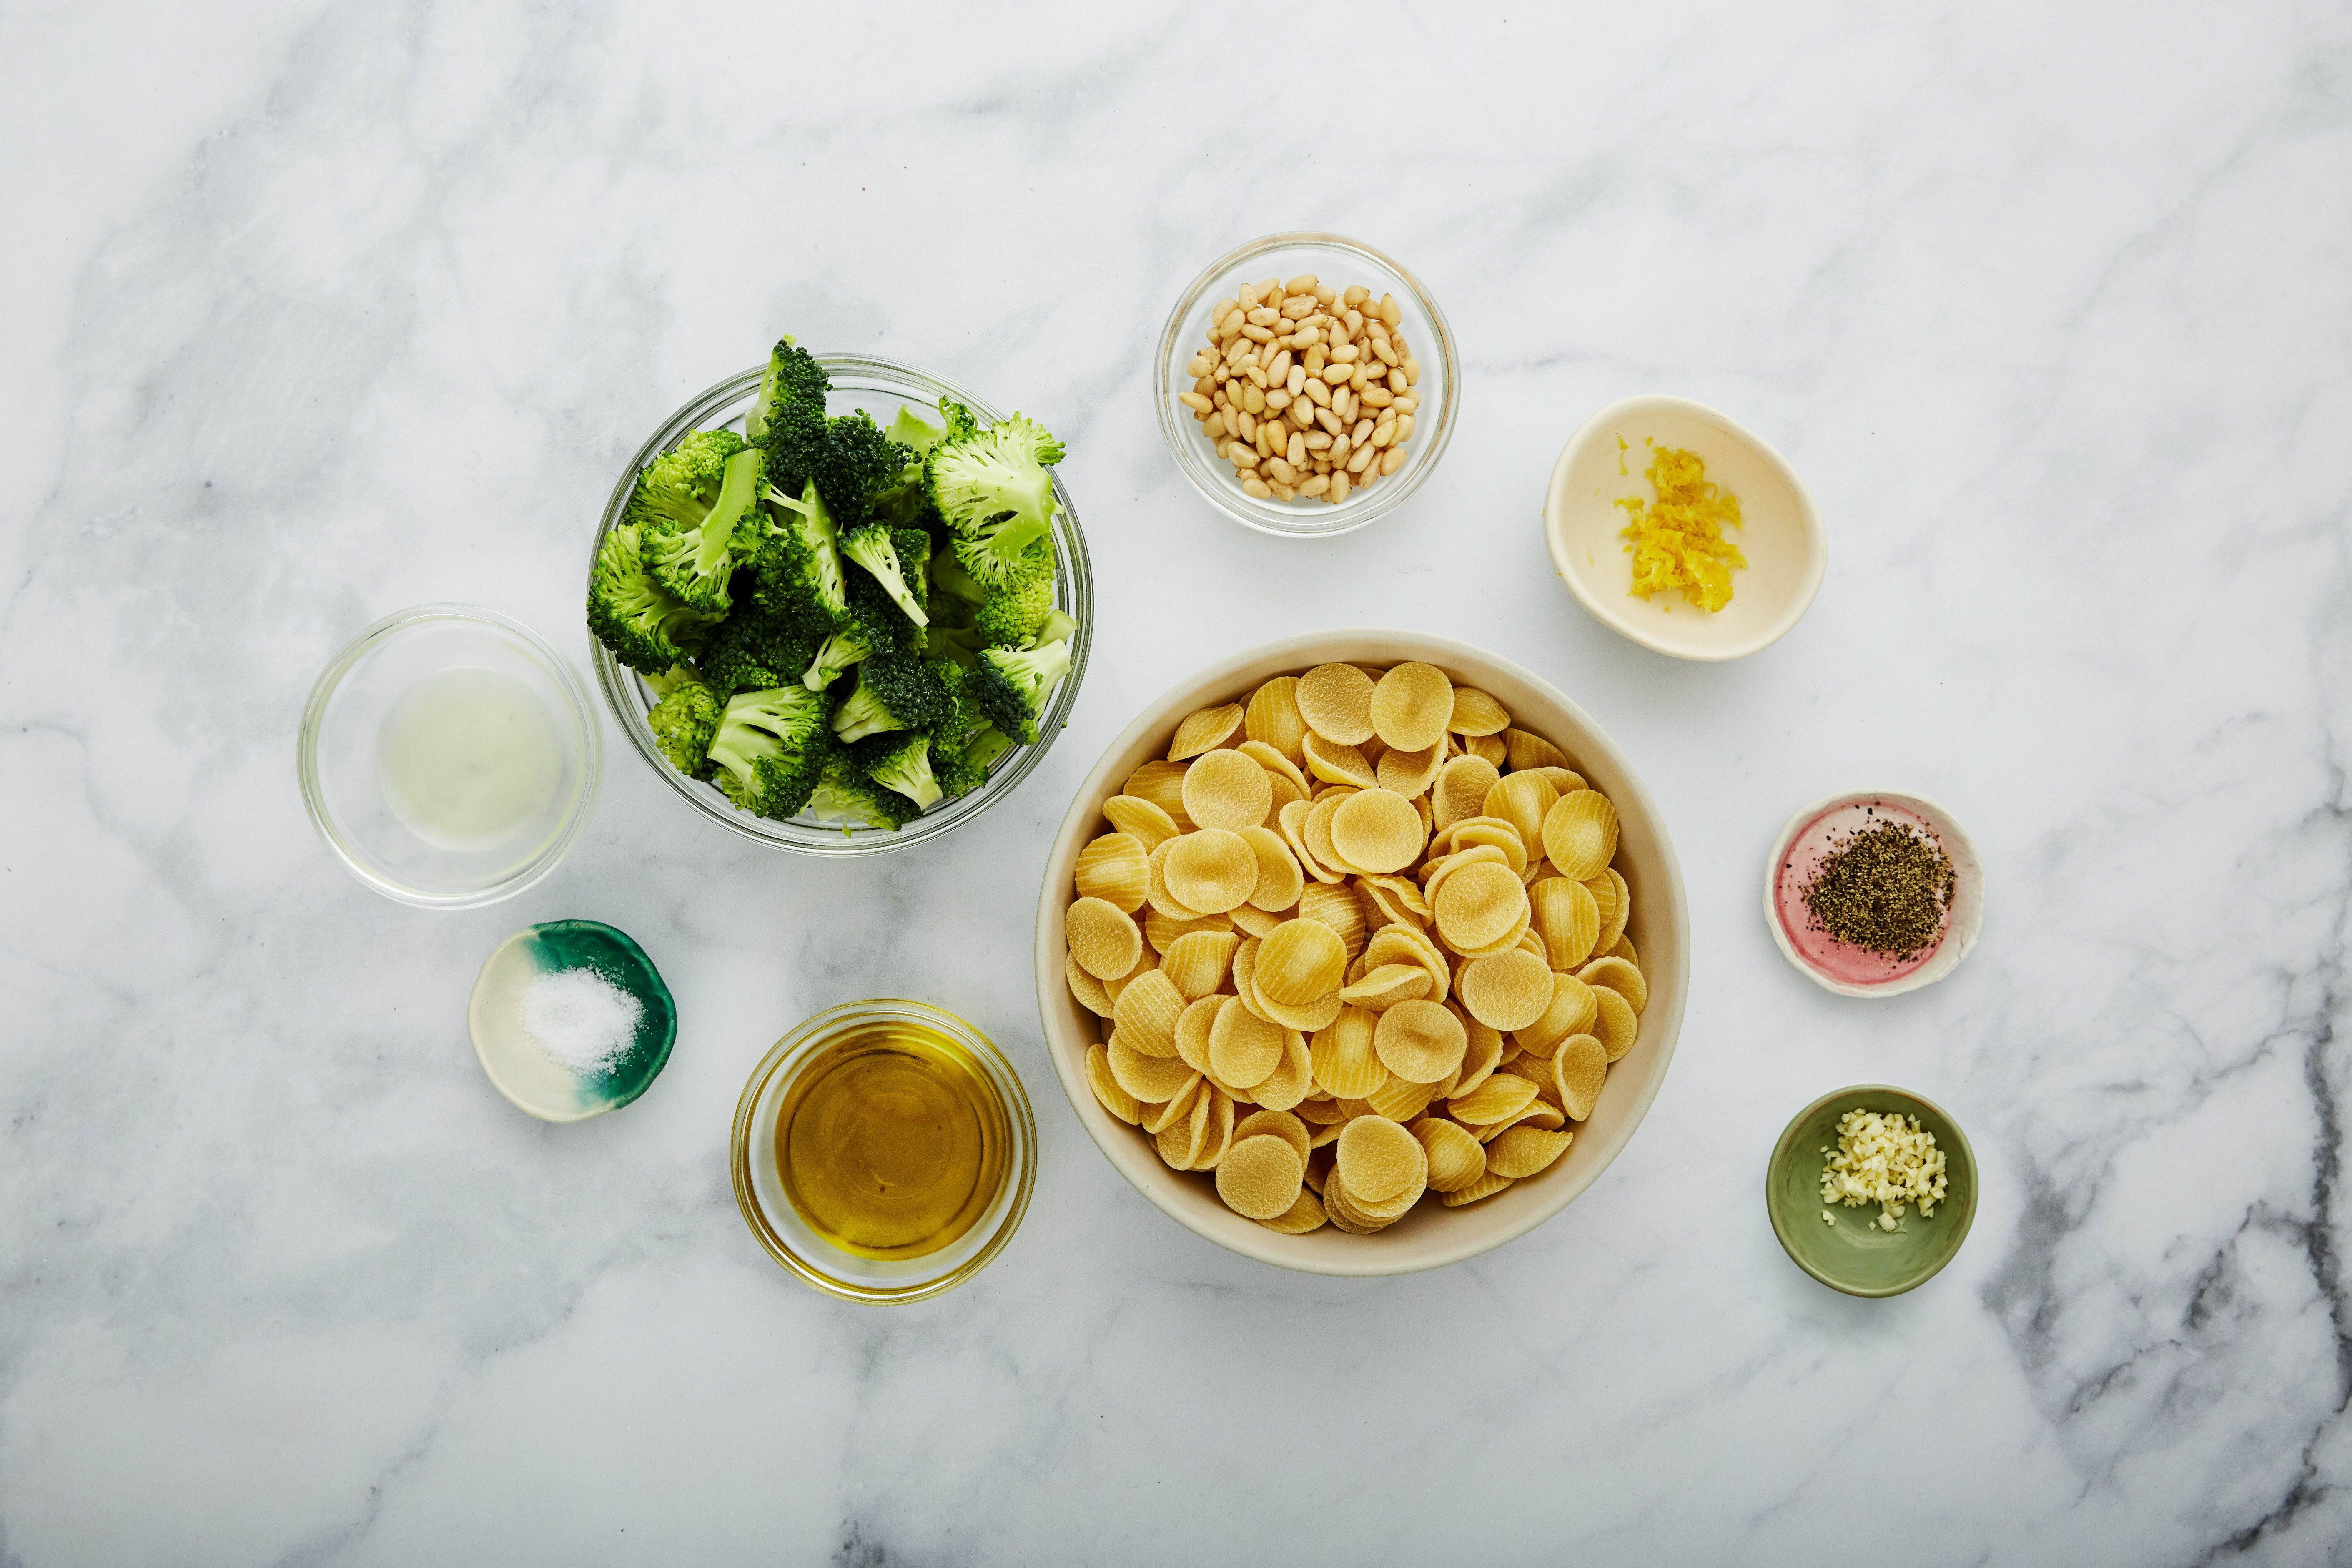 Ingredients for lemon pasta with pine nuts and broccoli